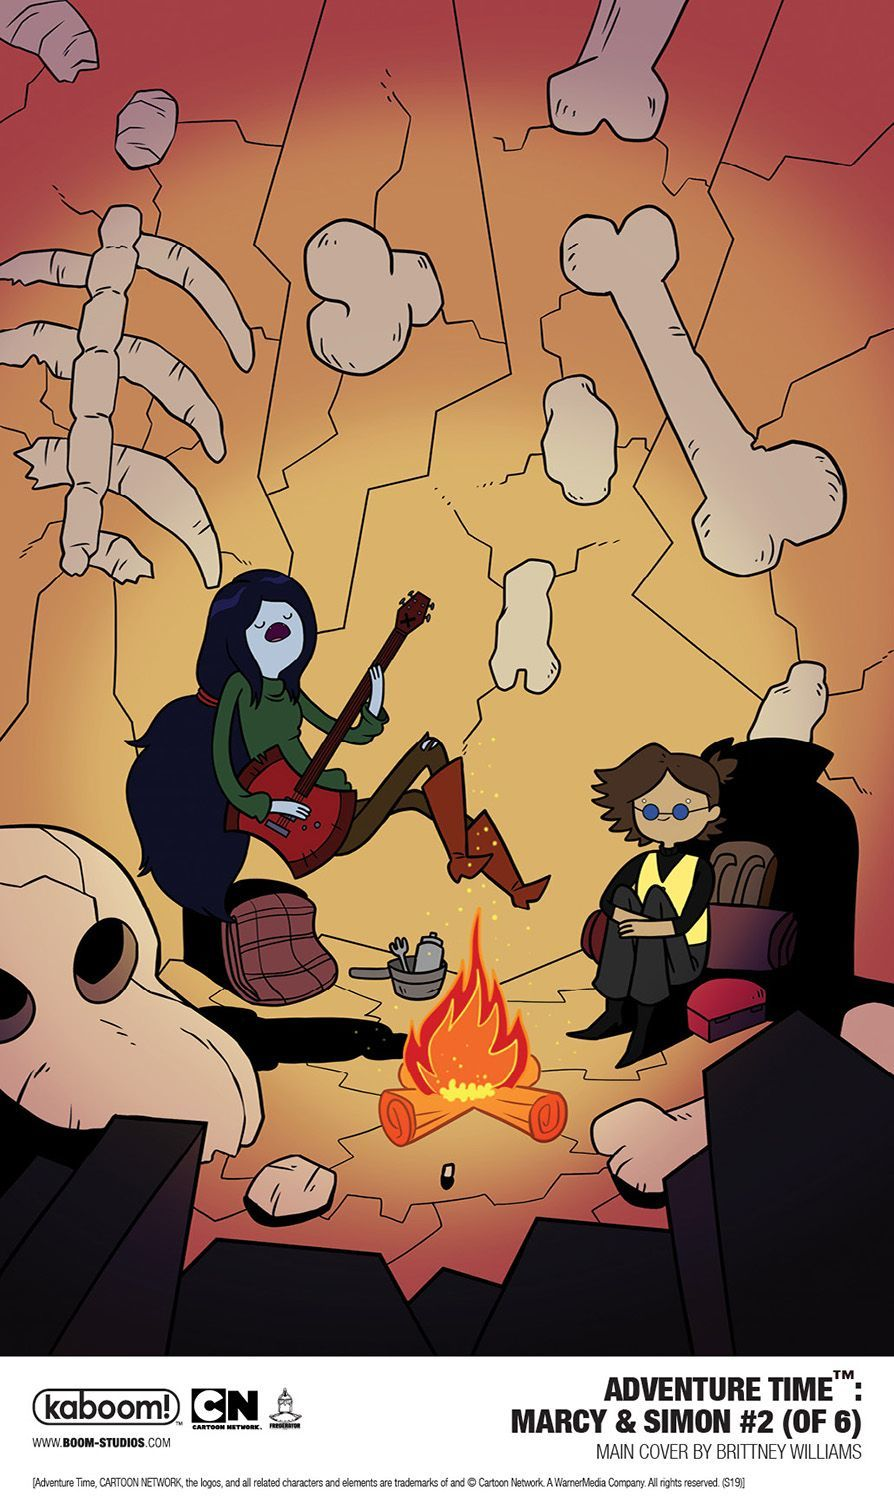 Adventure-Time-Marcy-And-Simon-2-Williams-Cover